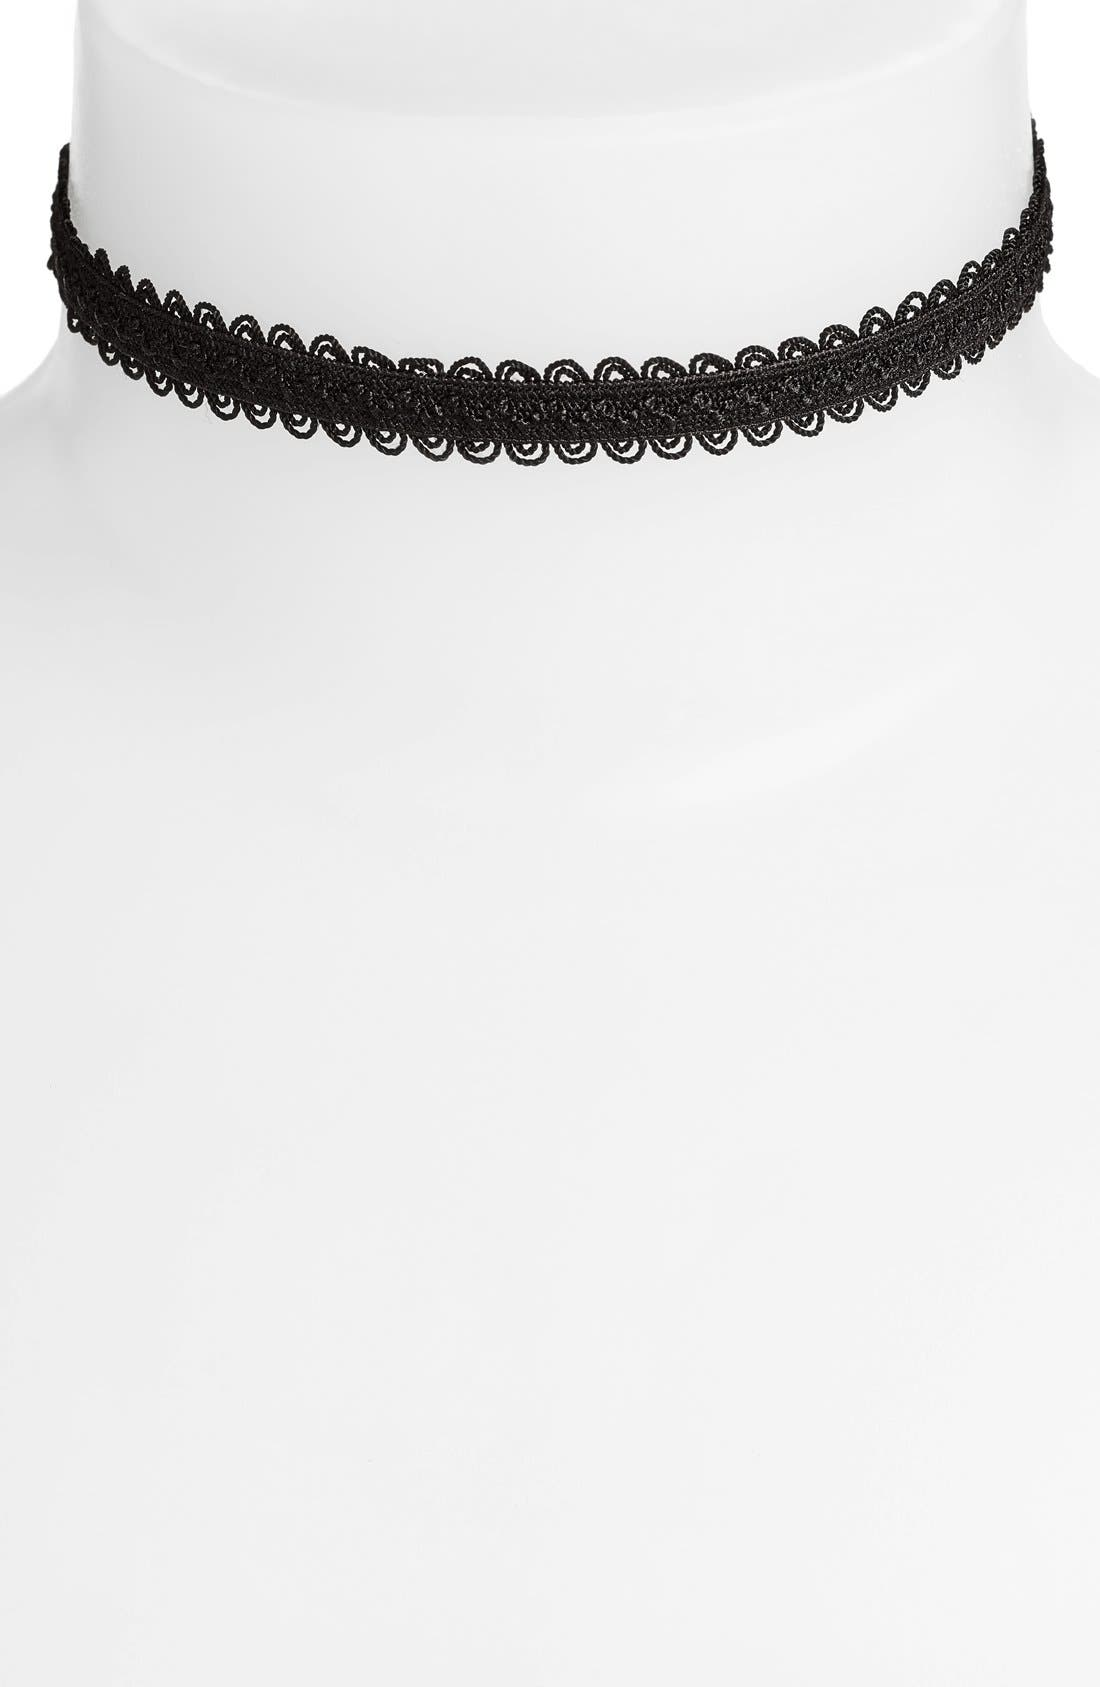 Alternate Image 1 Selected - Vanessa Mooney Black Lace Choker